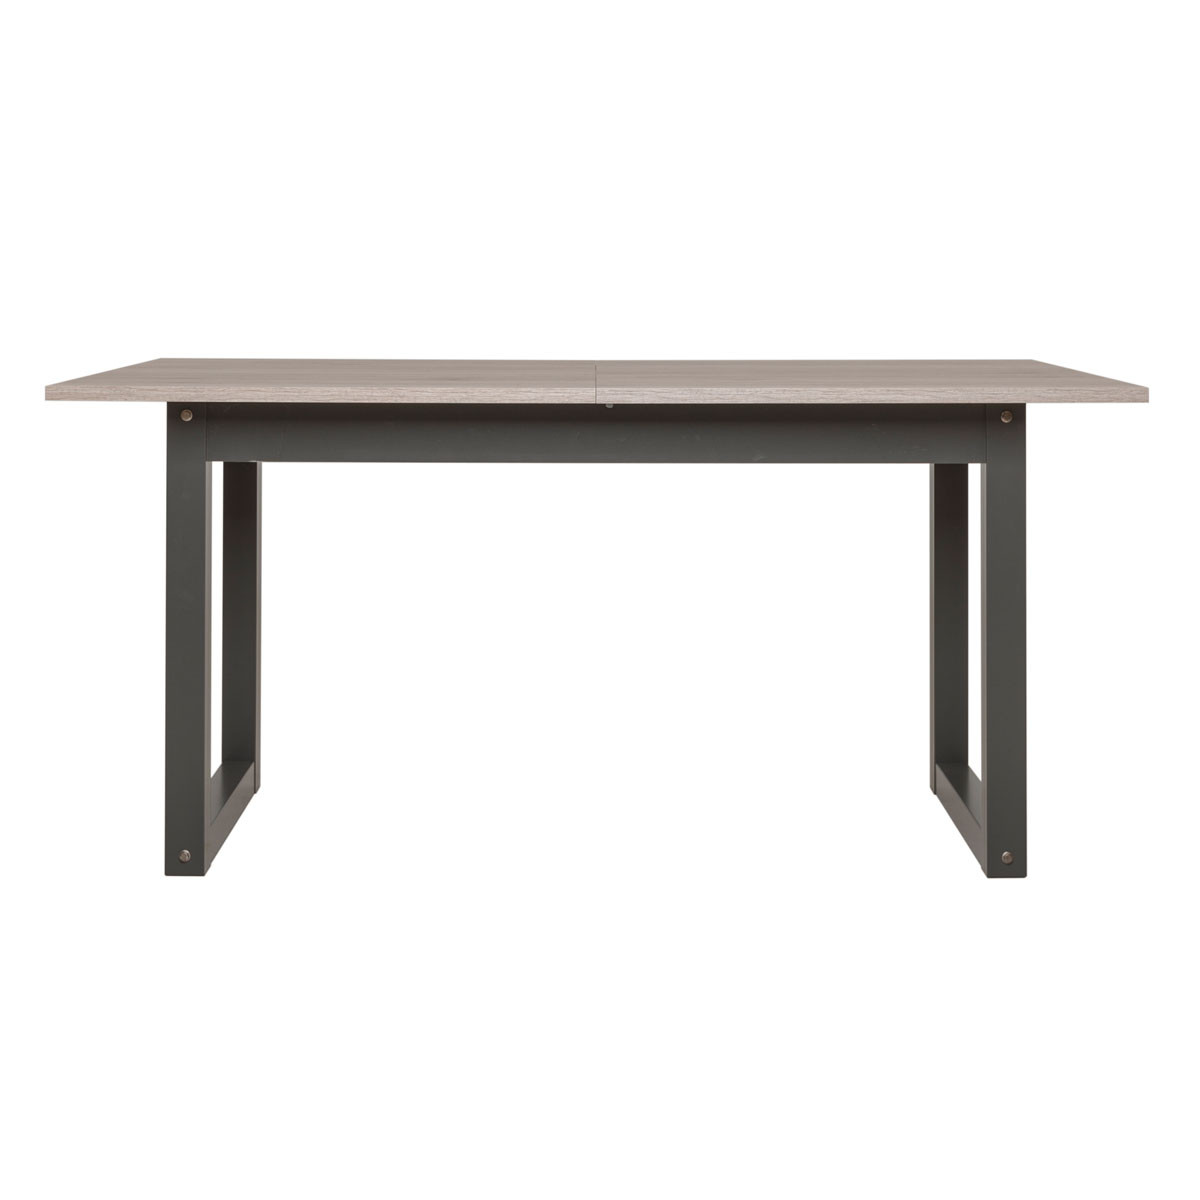 Table extenssible jusqu'a 2 m BROOKLYN